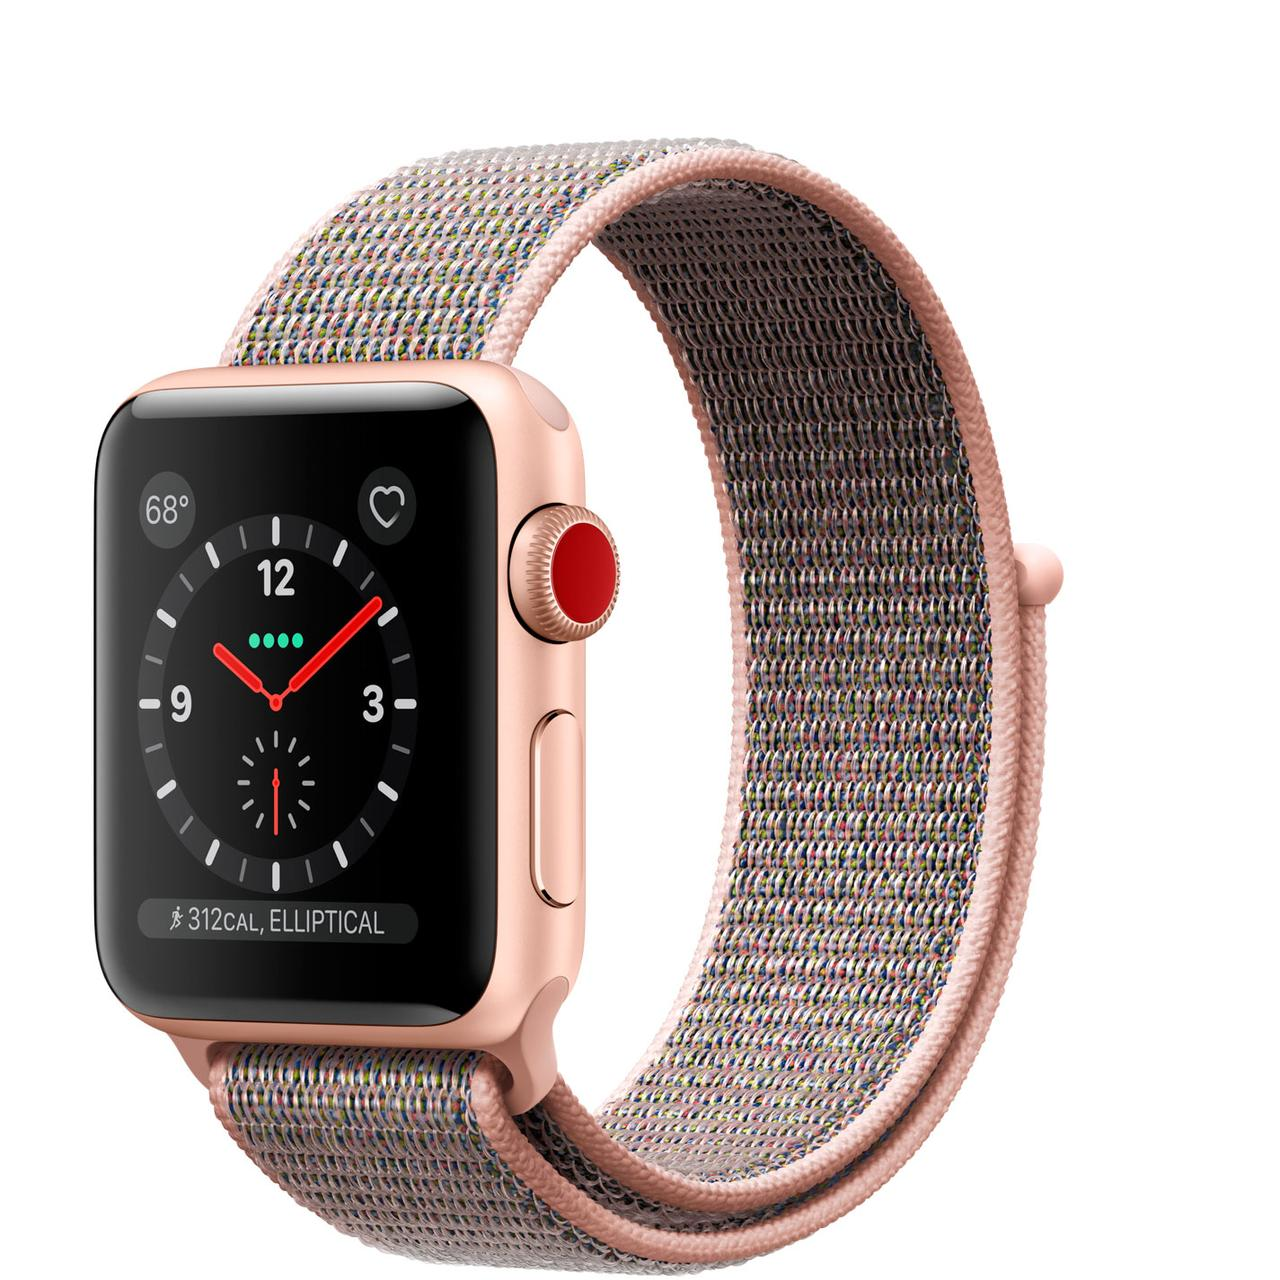 Apple Watch Series 3 GPS + Cellular 38mm Gold Aluminum with Pink Sand Sport Loop (MQJU2)